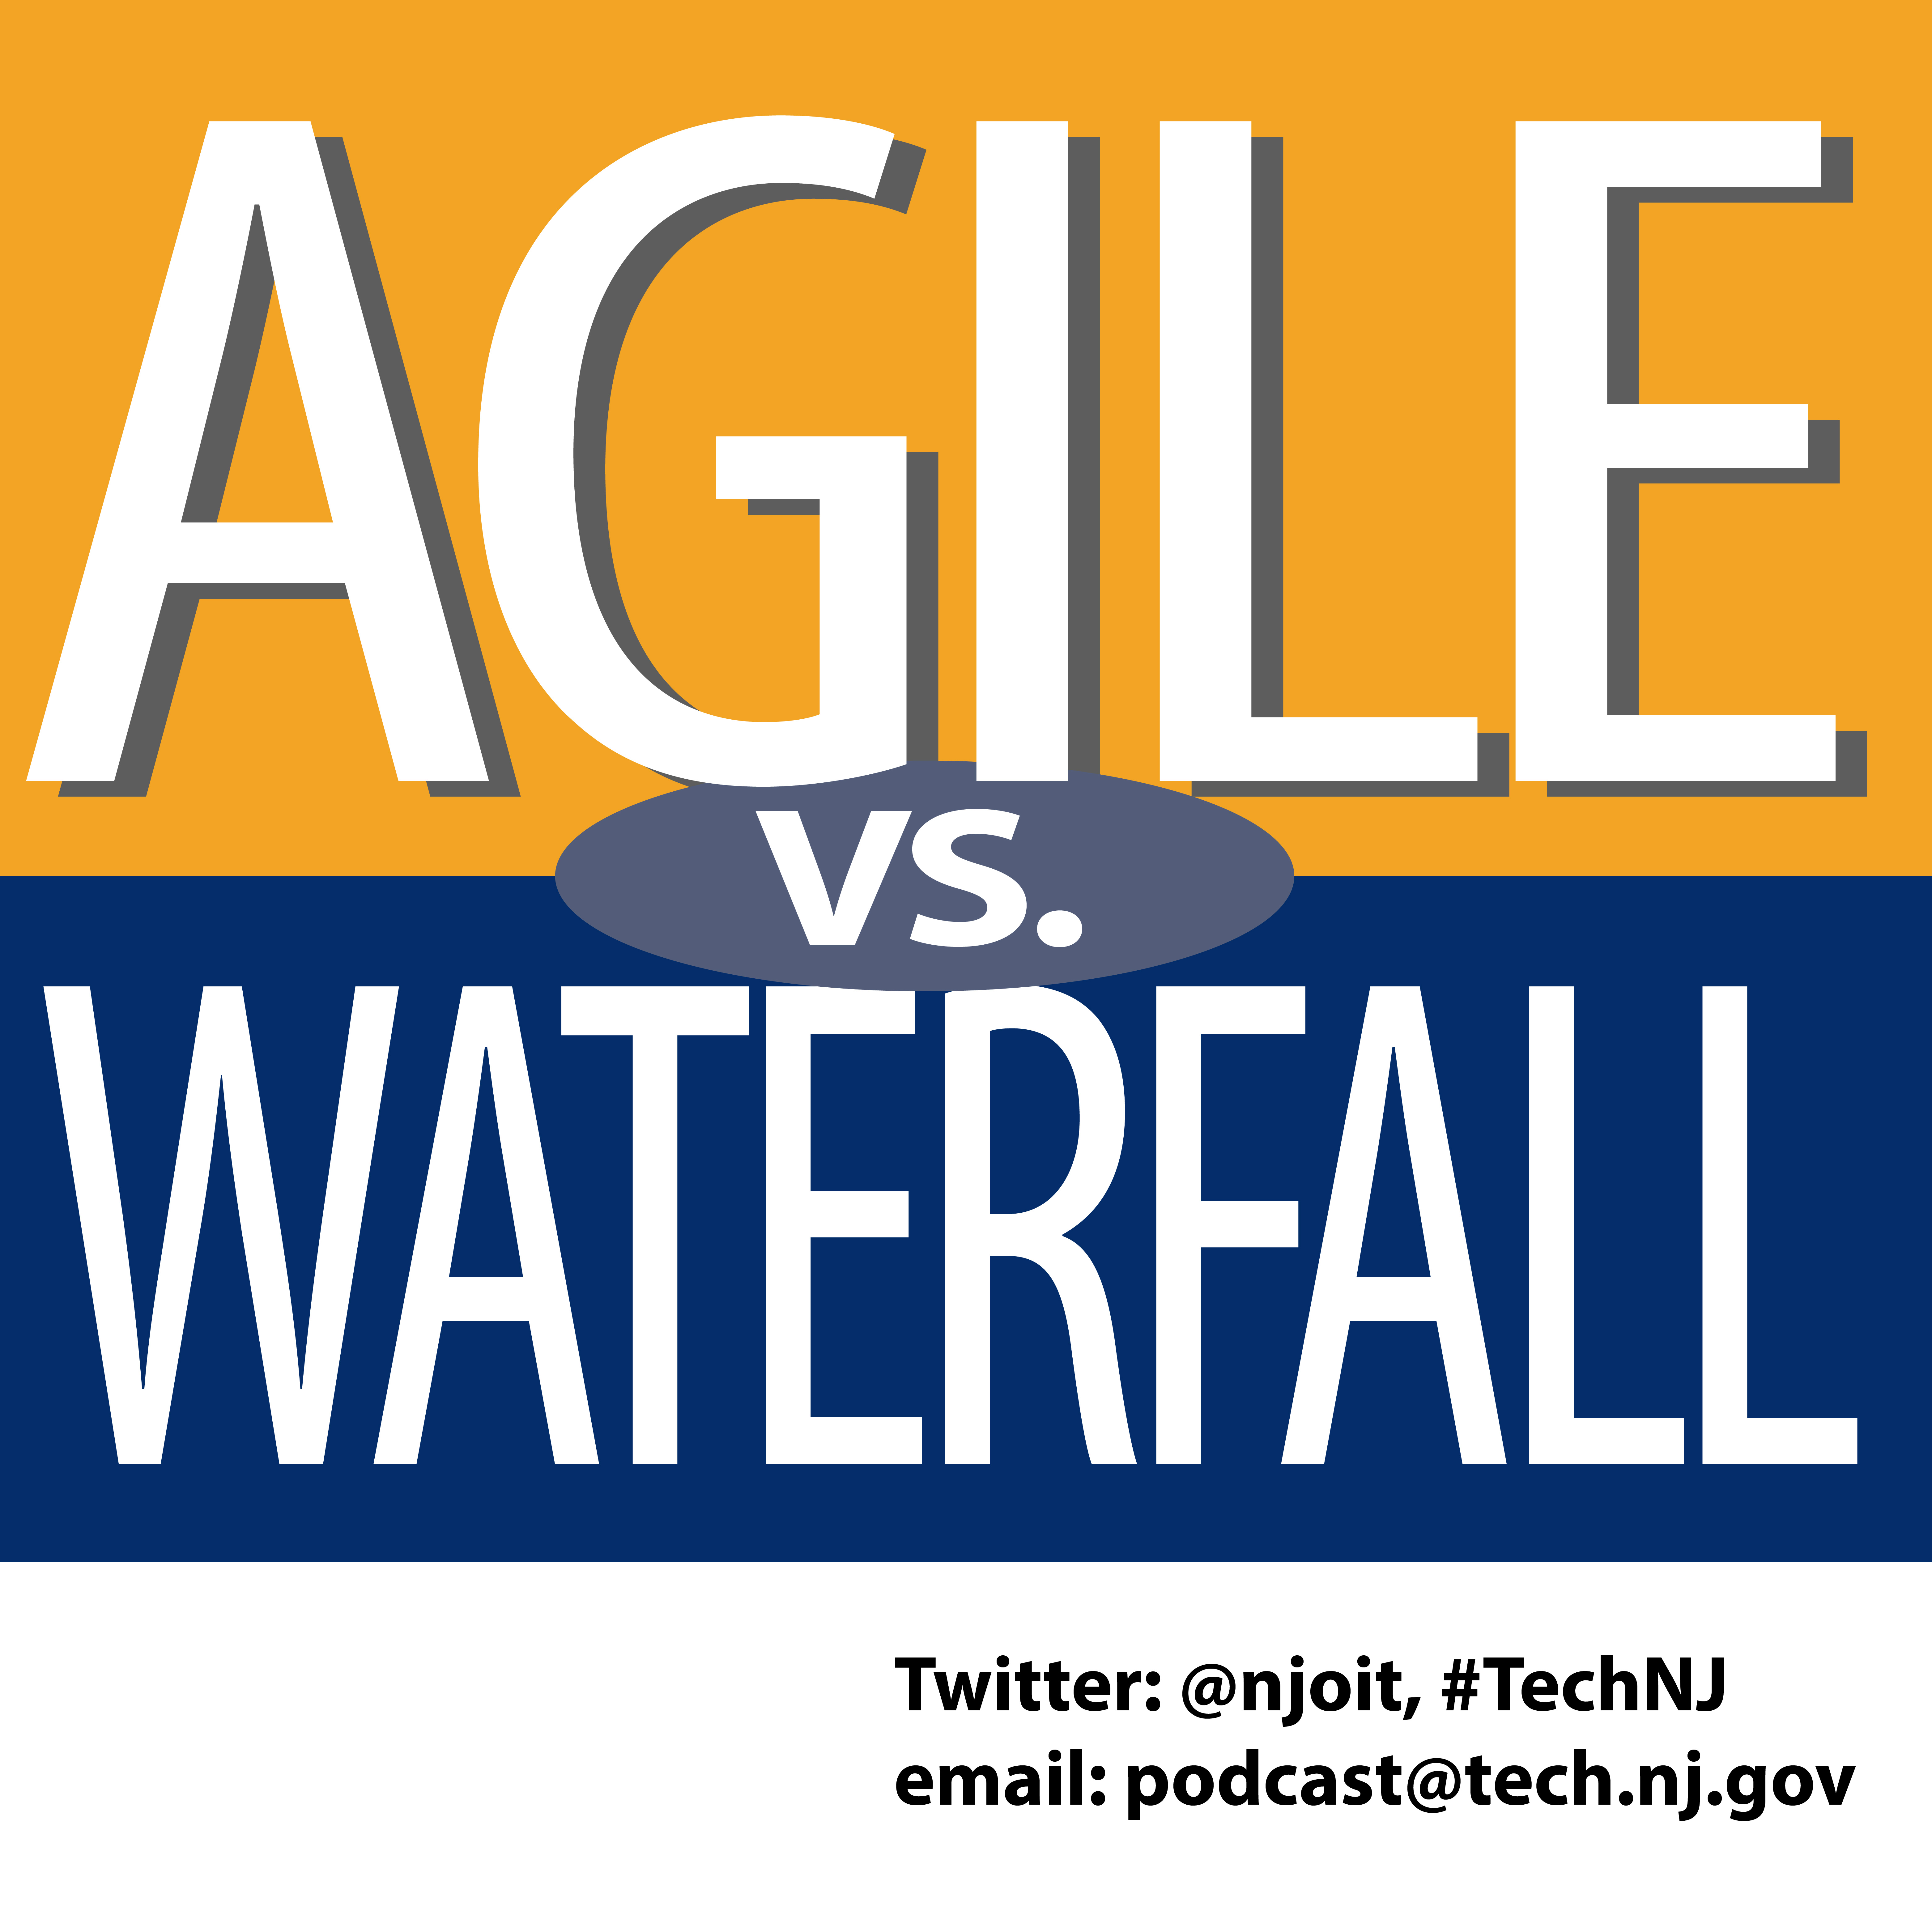 Season2; Agile vs Waterfall